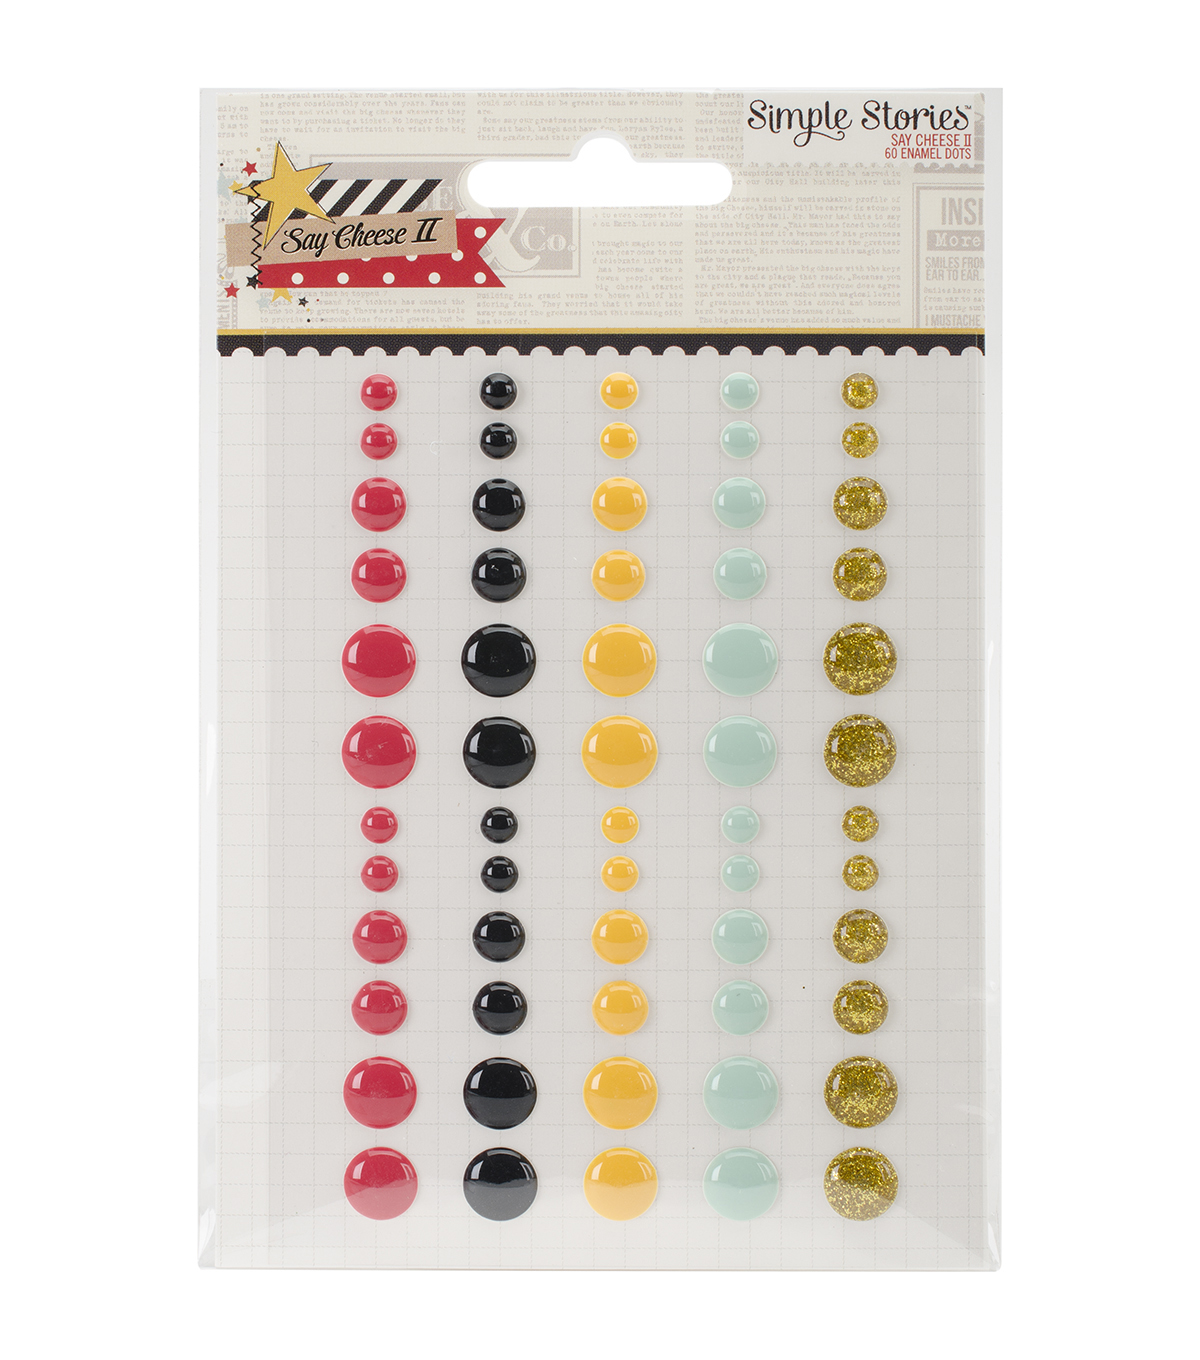 Simple Stories Say Cheese II Enamel Dots Embellishments